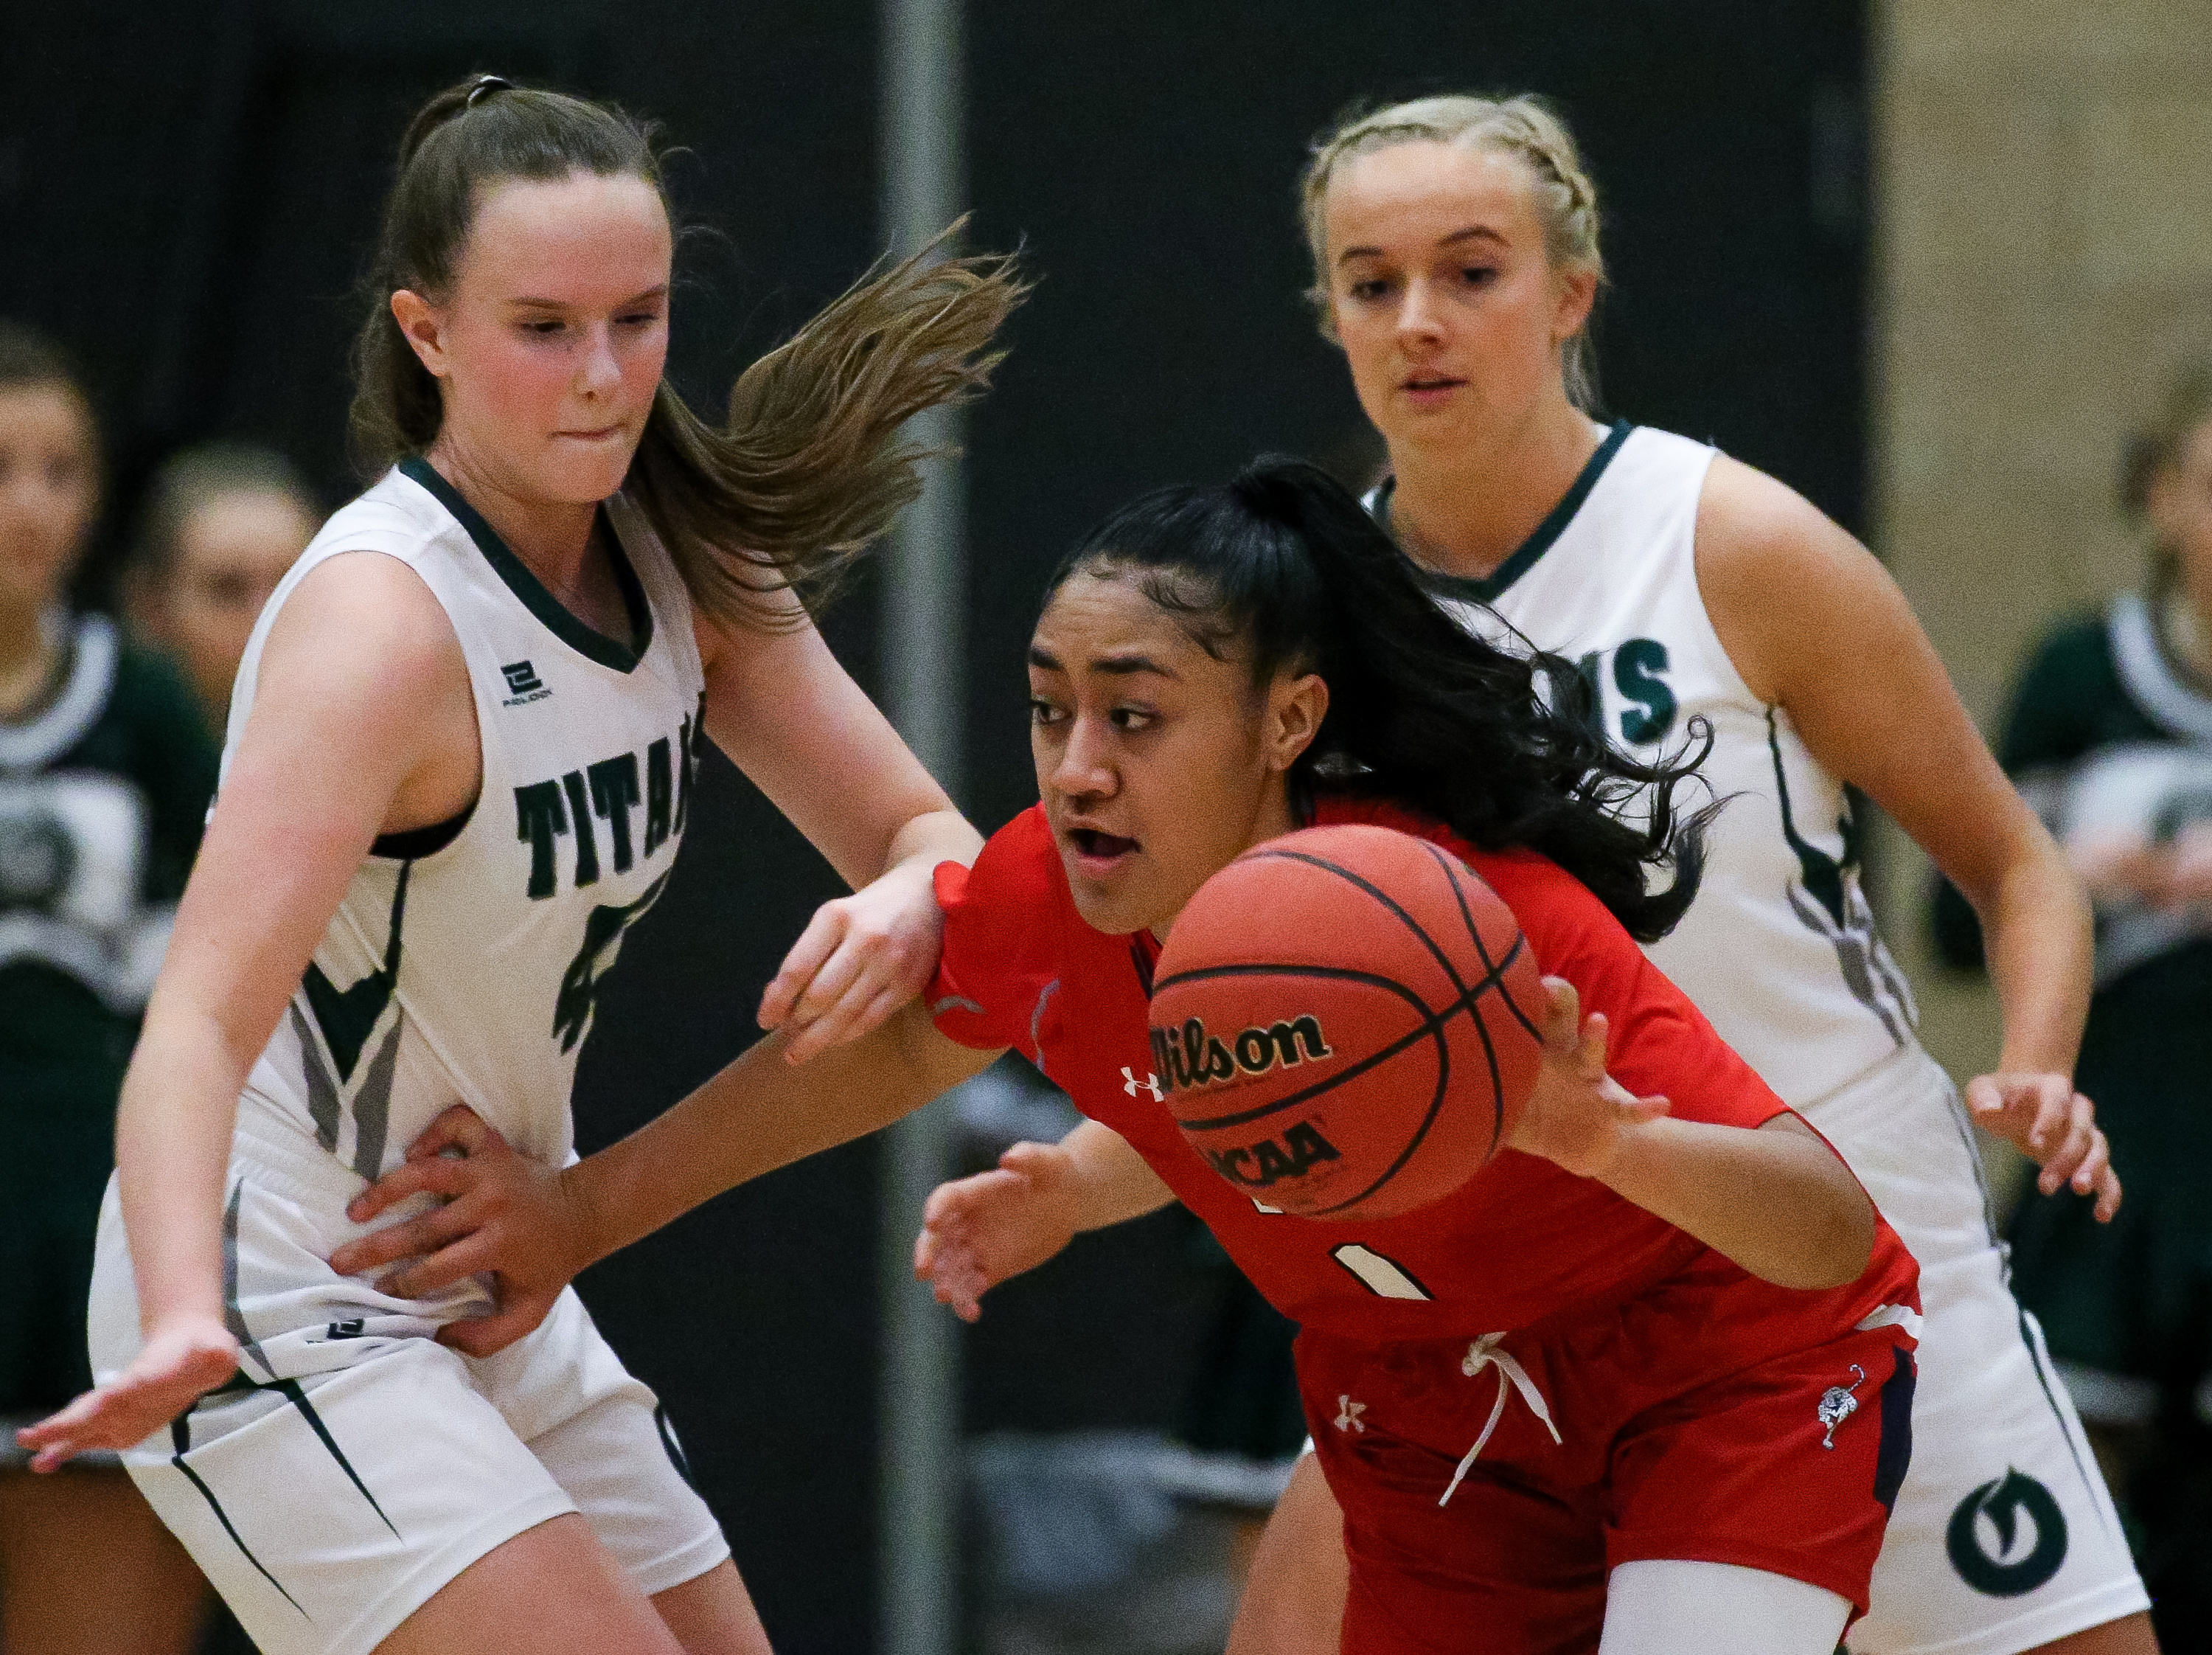 Olympus and East compete in a high school girls basketball game in Holladay on Friday, Feb. 7, 2020.